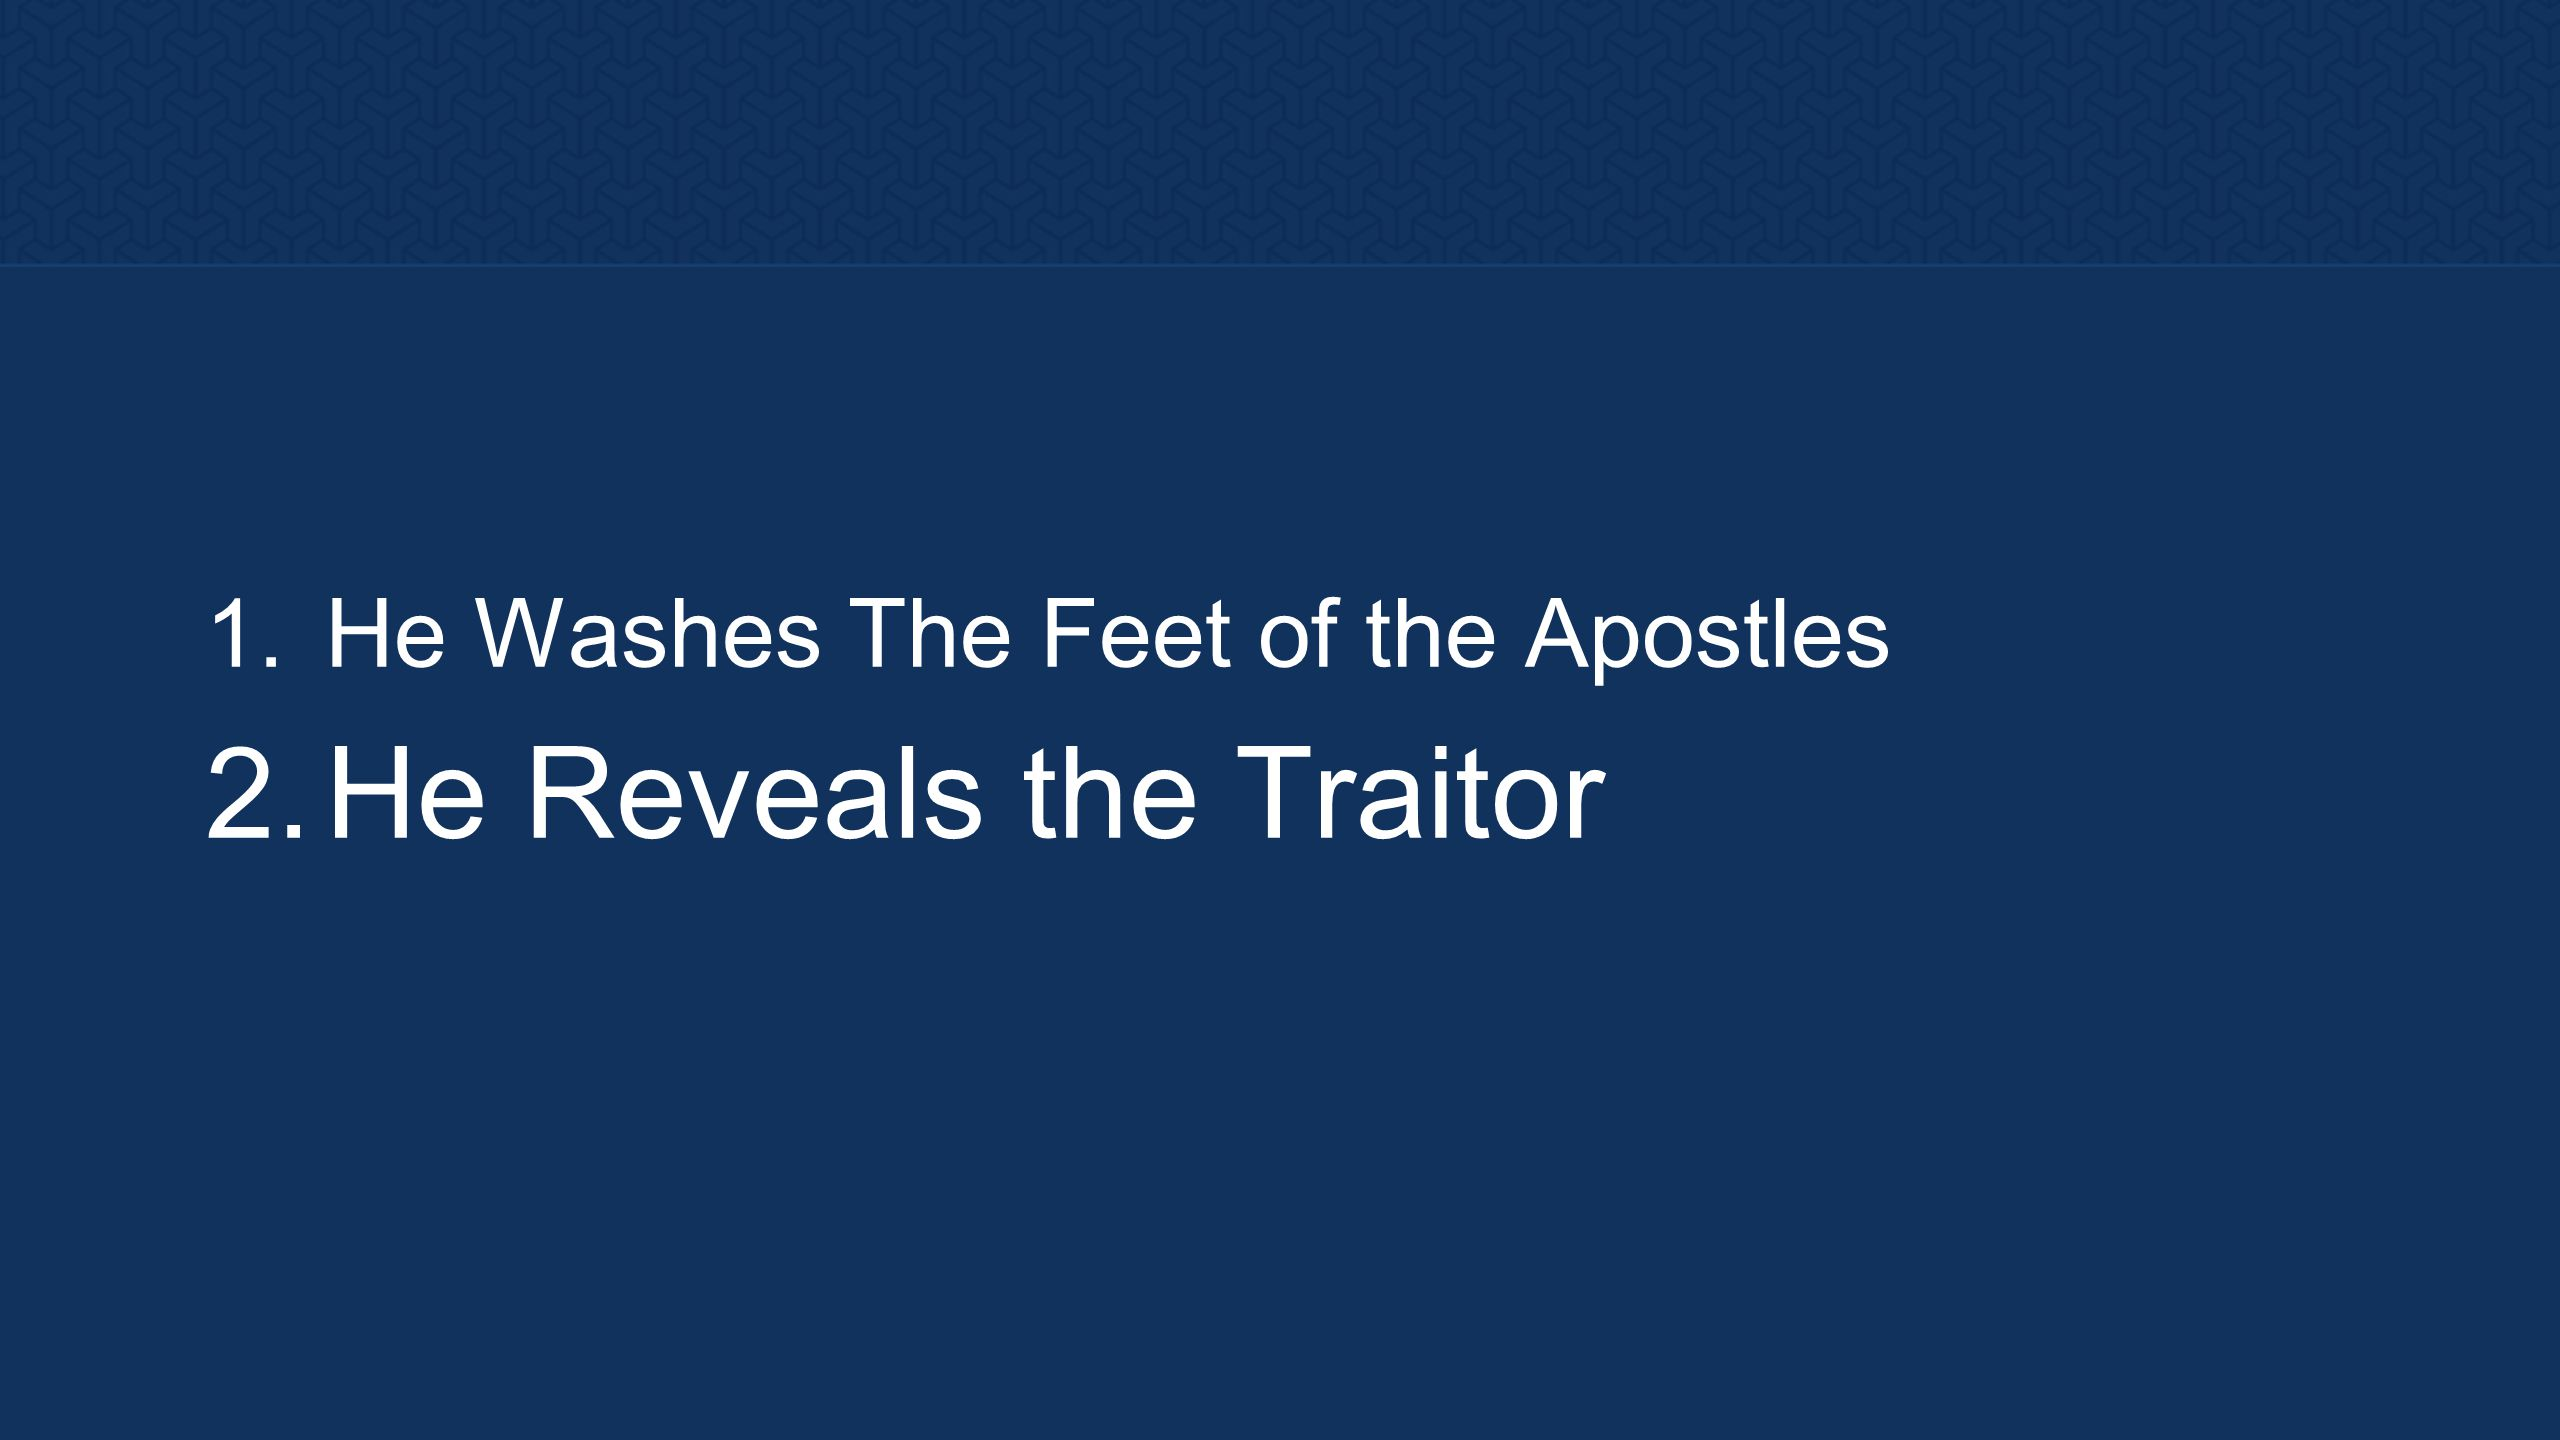 1. He Washes The Feet of the Apostles 2. He Reveals the Traitor